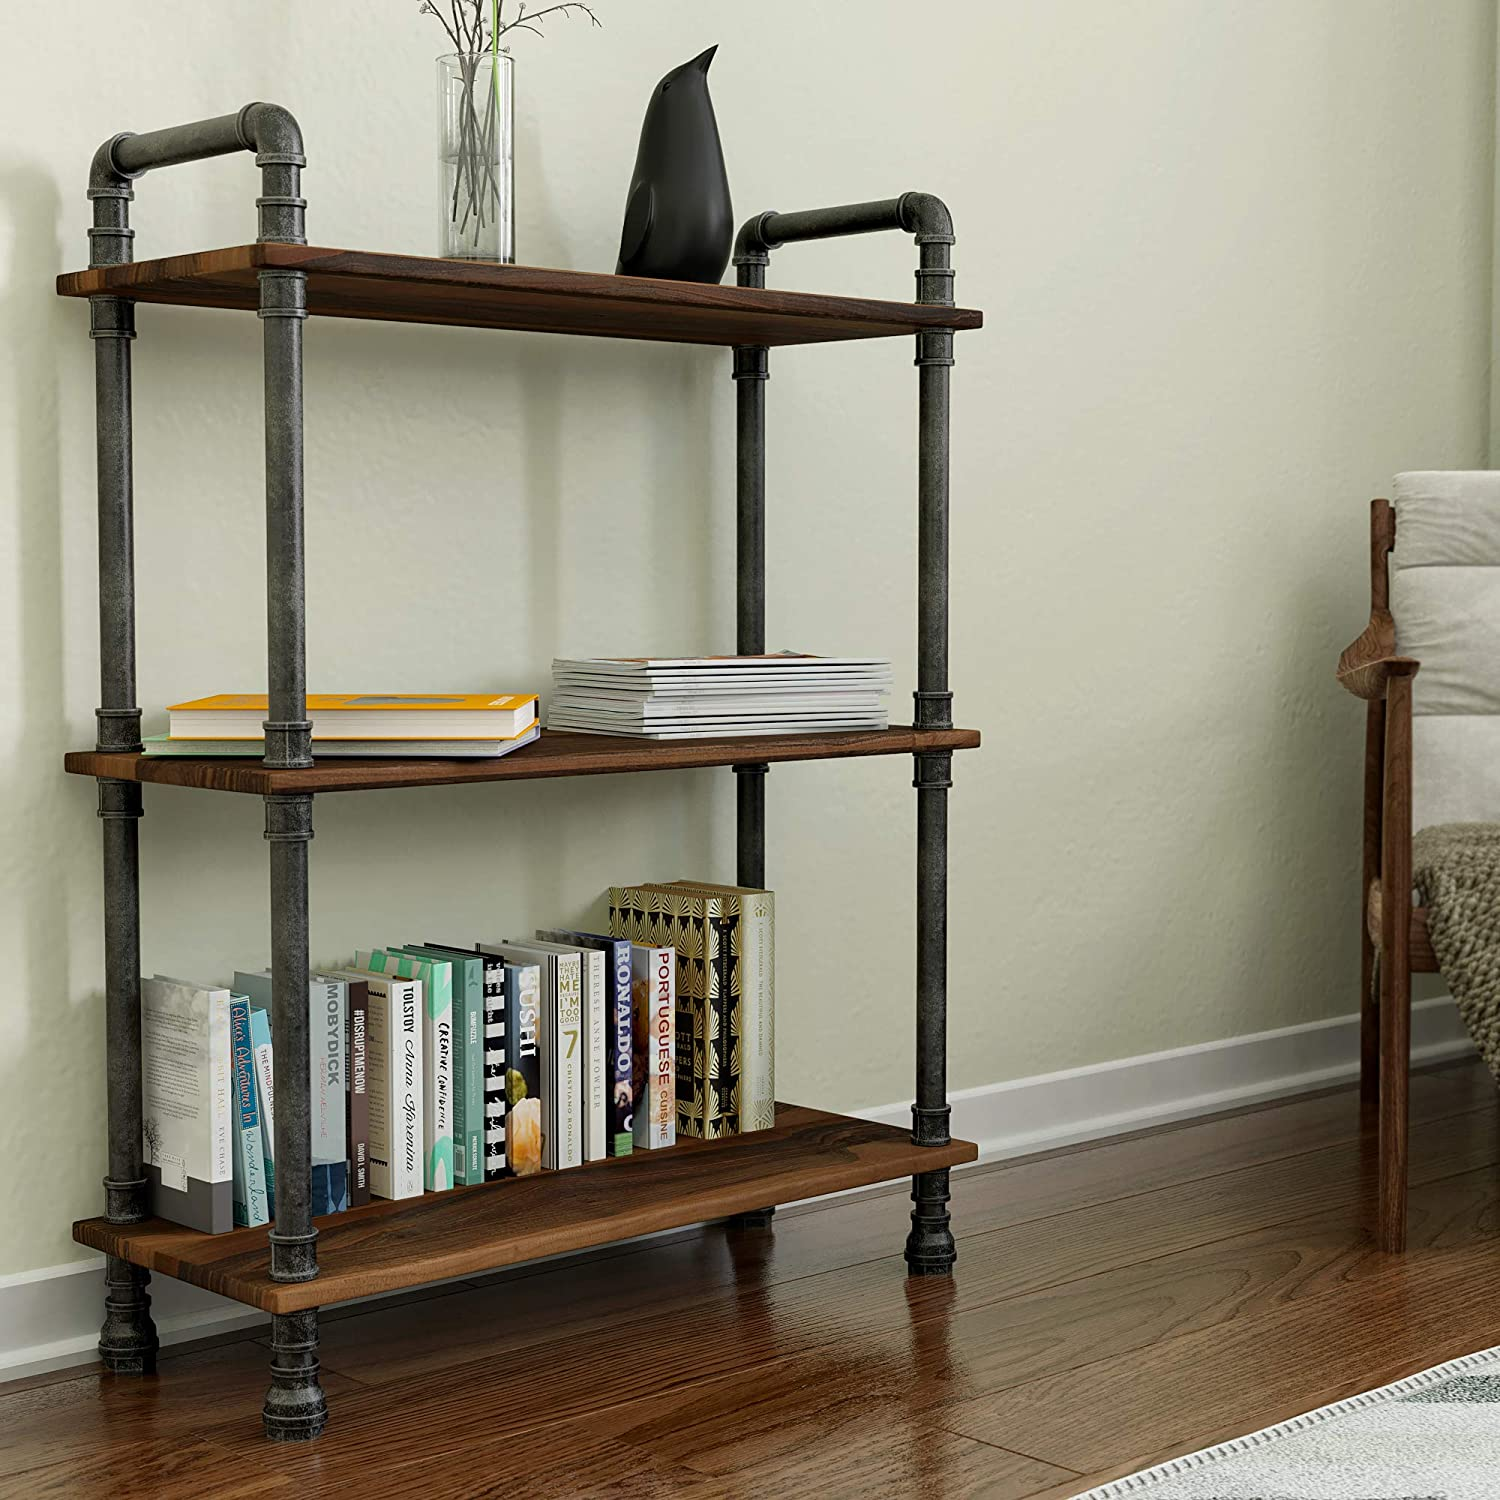 Barnyard Designs Furniture 3 Tier Etagere Bookcase Solid Pine Open Wood Shelves Rustic Modern Industrial Metal And Wood Style Bookshelf Brown 38 5 X 29 5 X 11 75 Amazon Ca Home Kitchen